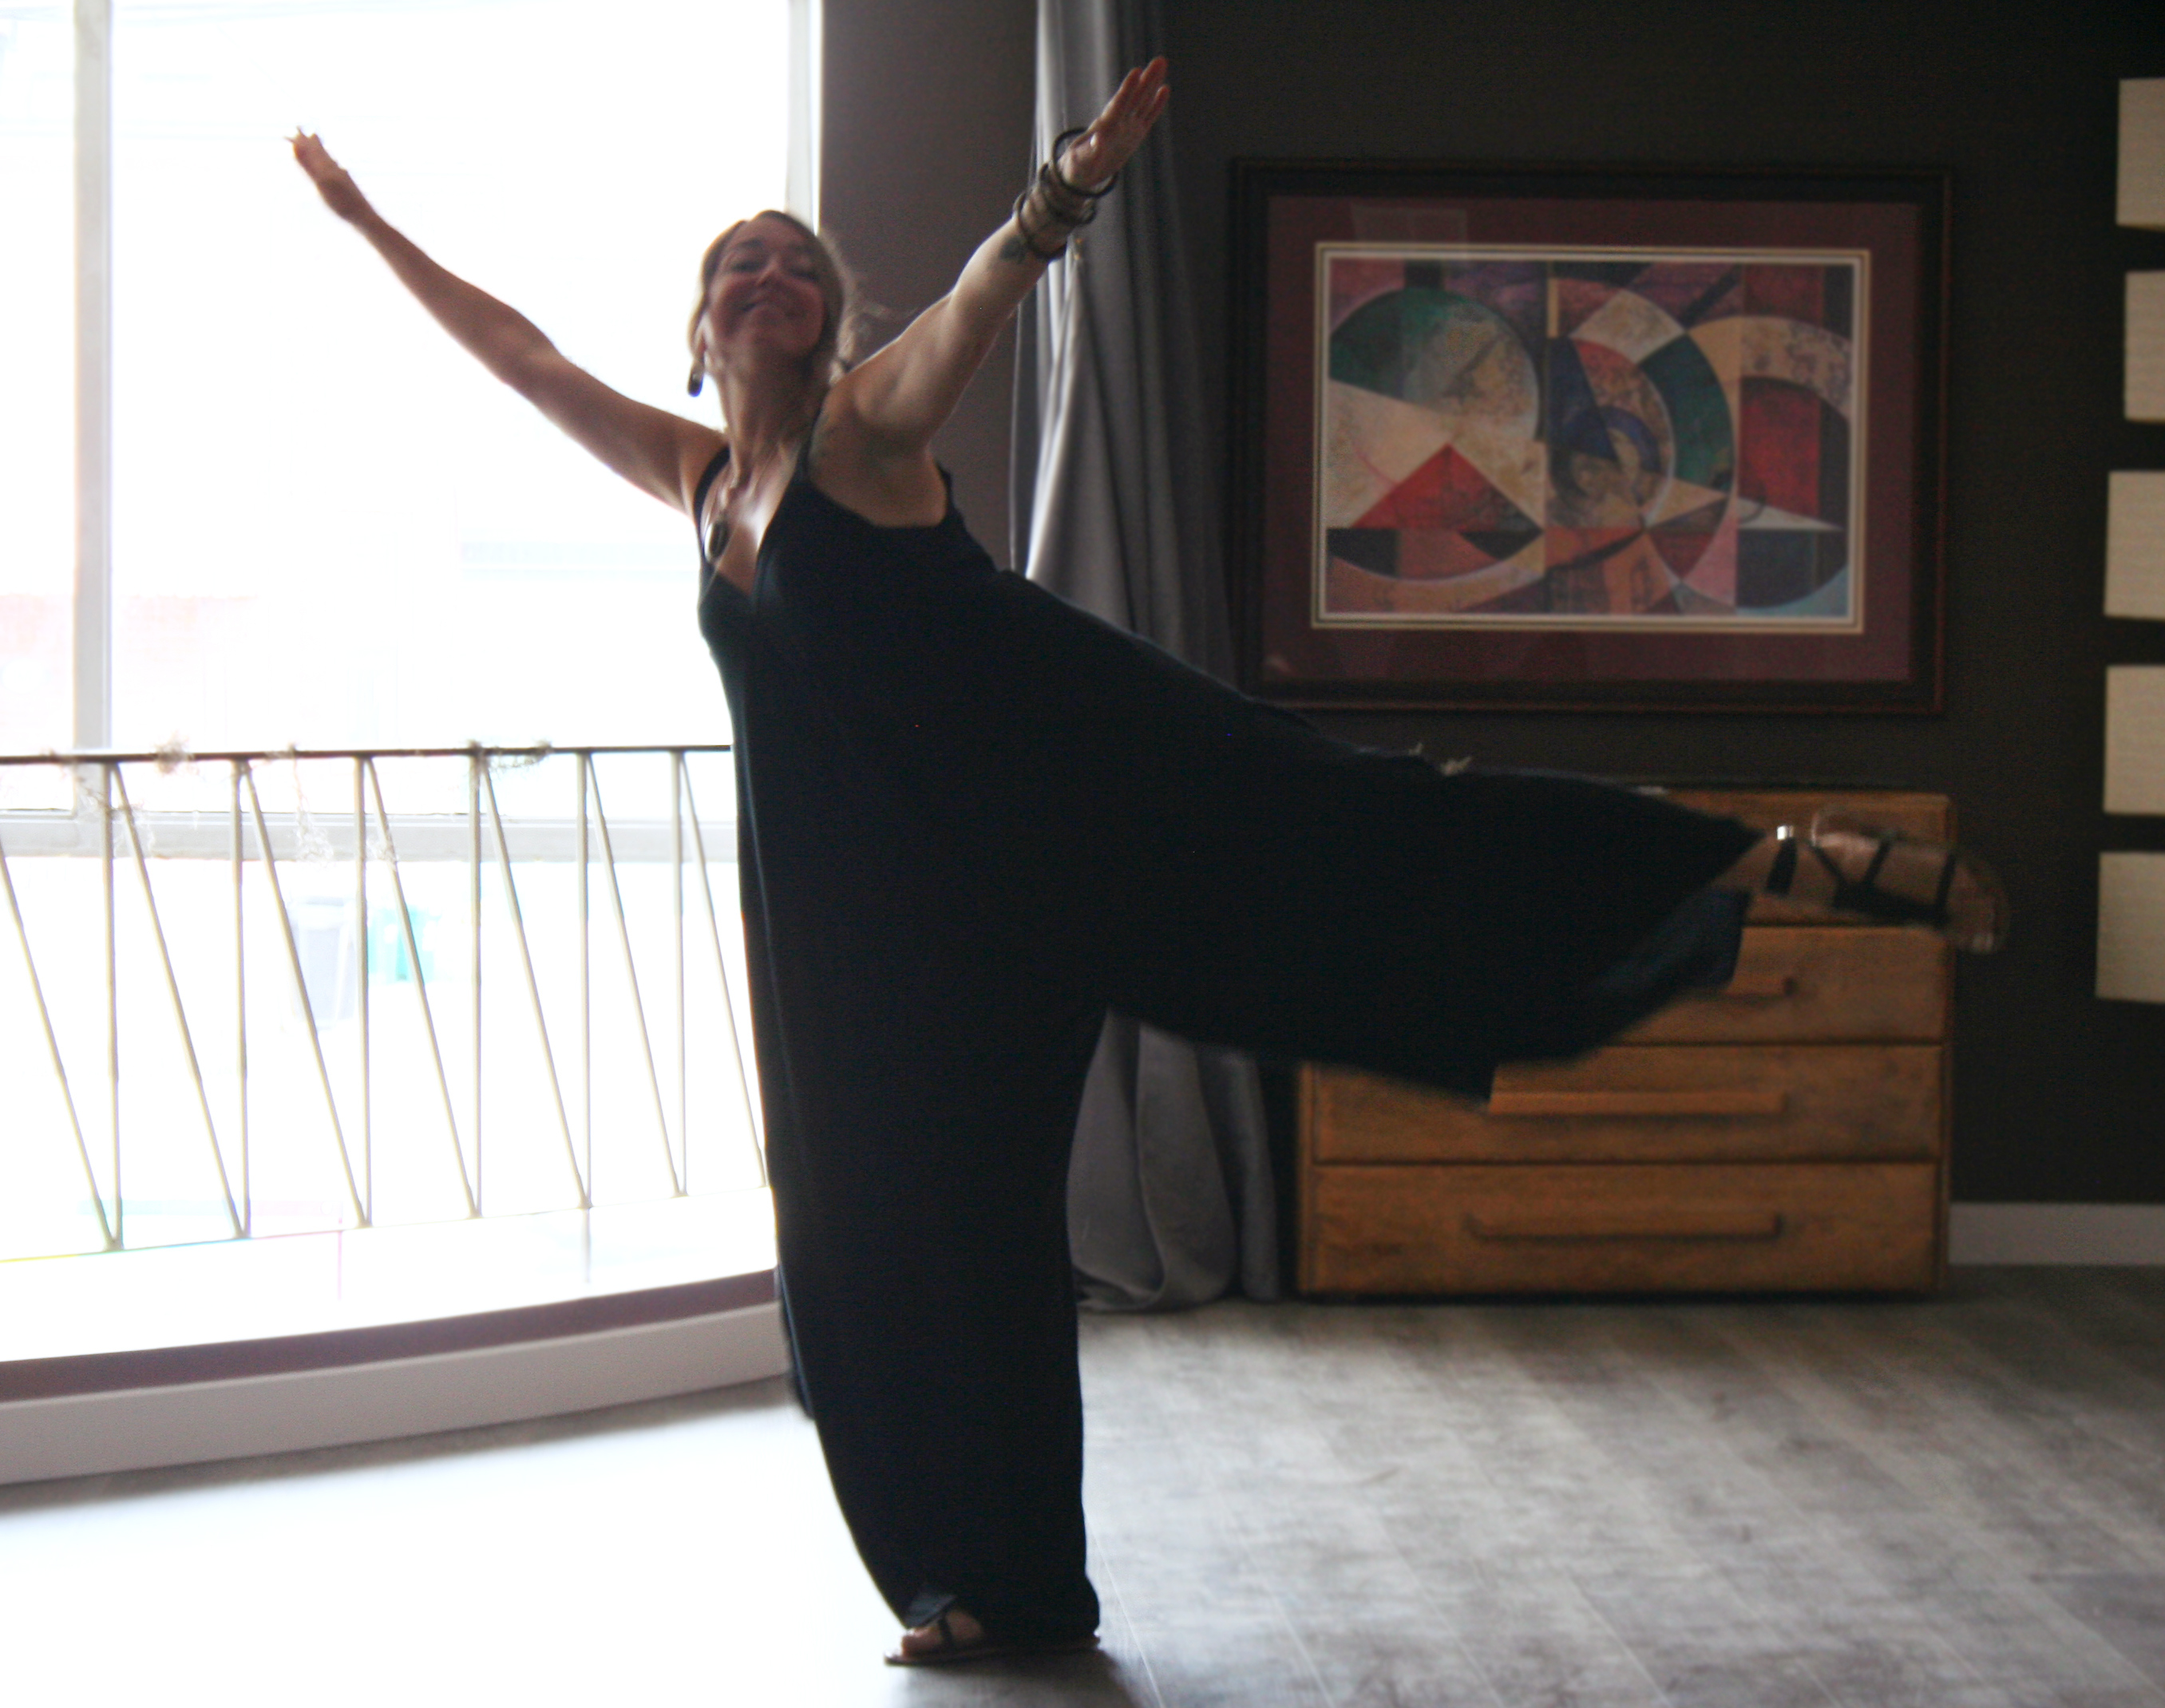 Jenn Grein spreading her wings on the me